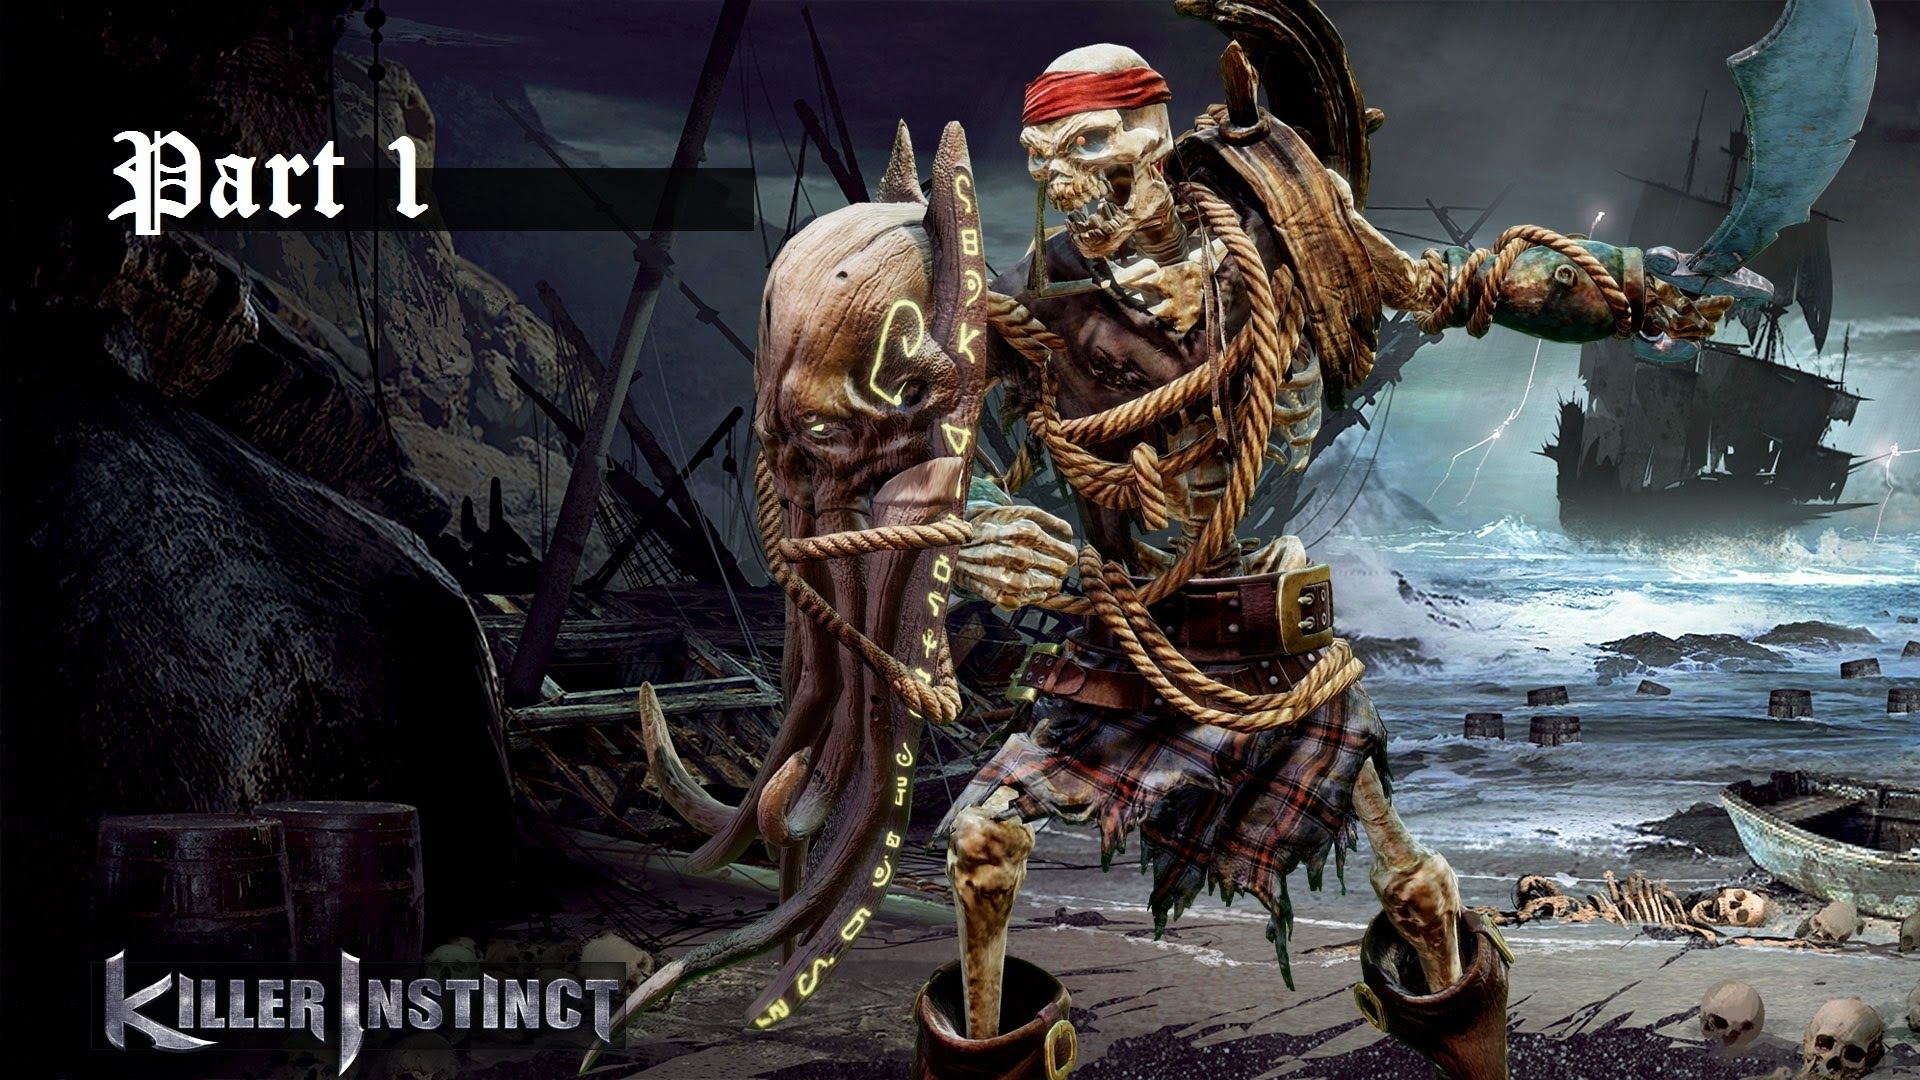 killer instinct - spinal story mode part 1 (walkthrough, playthrough